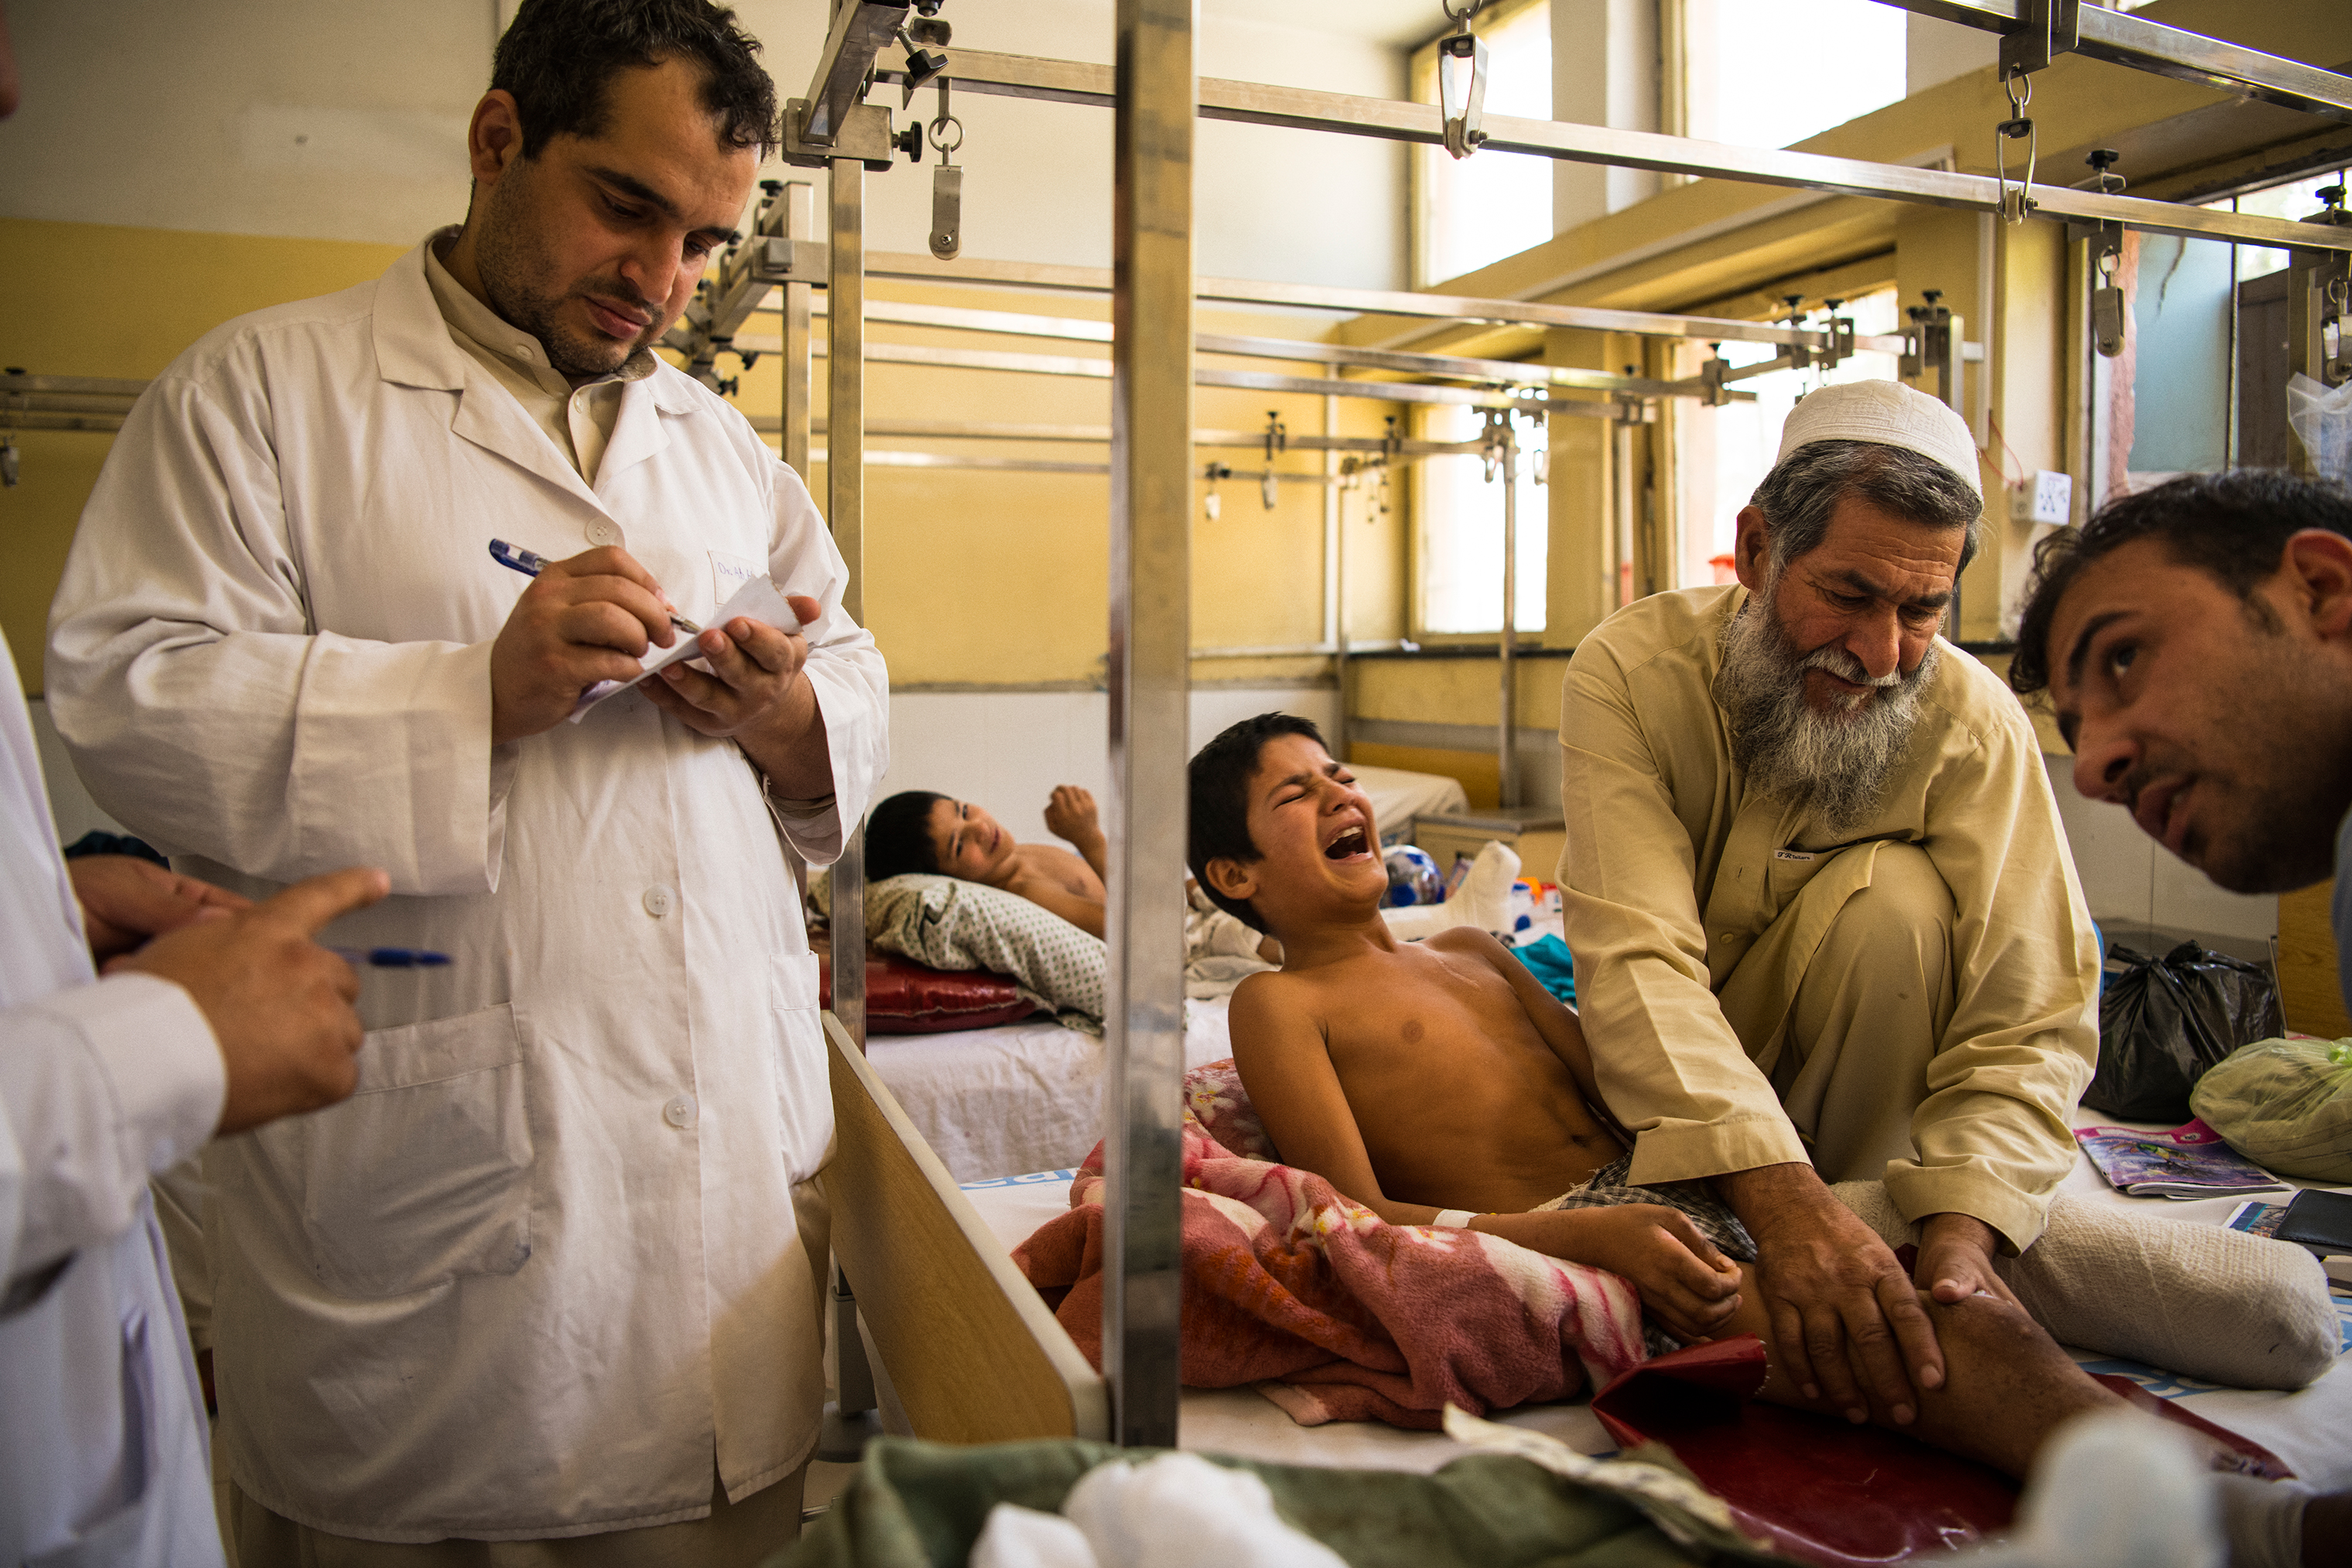 Abdul Rashid's wounds are cleaned, drained and redressed prior to he and his brothers' discharge from Nangarhar Regional Hospital after a month-long stay.